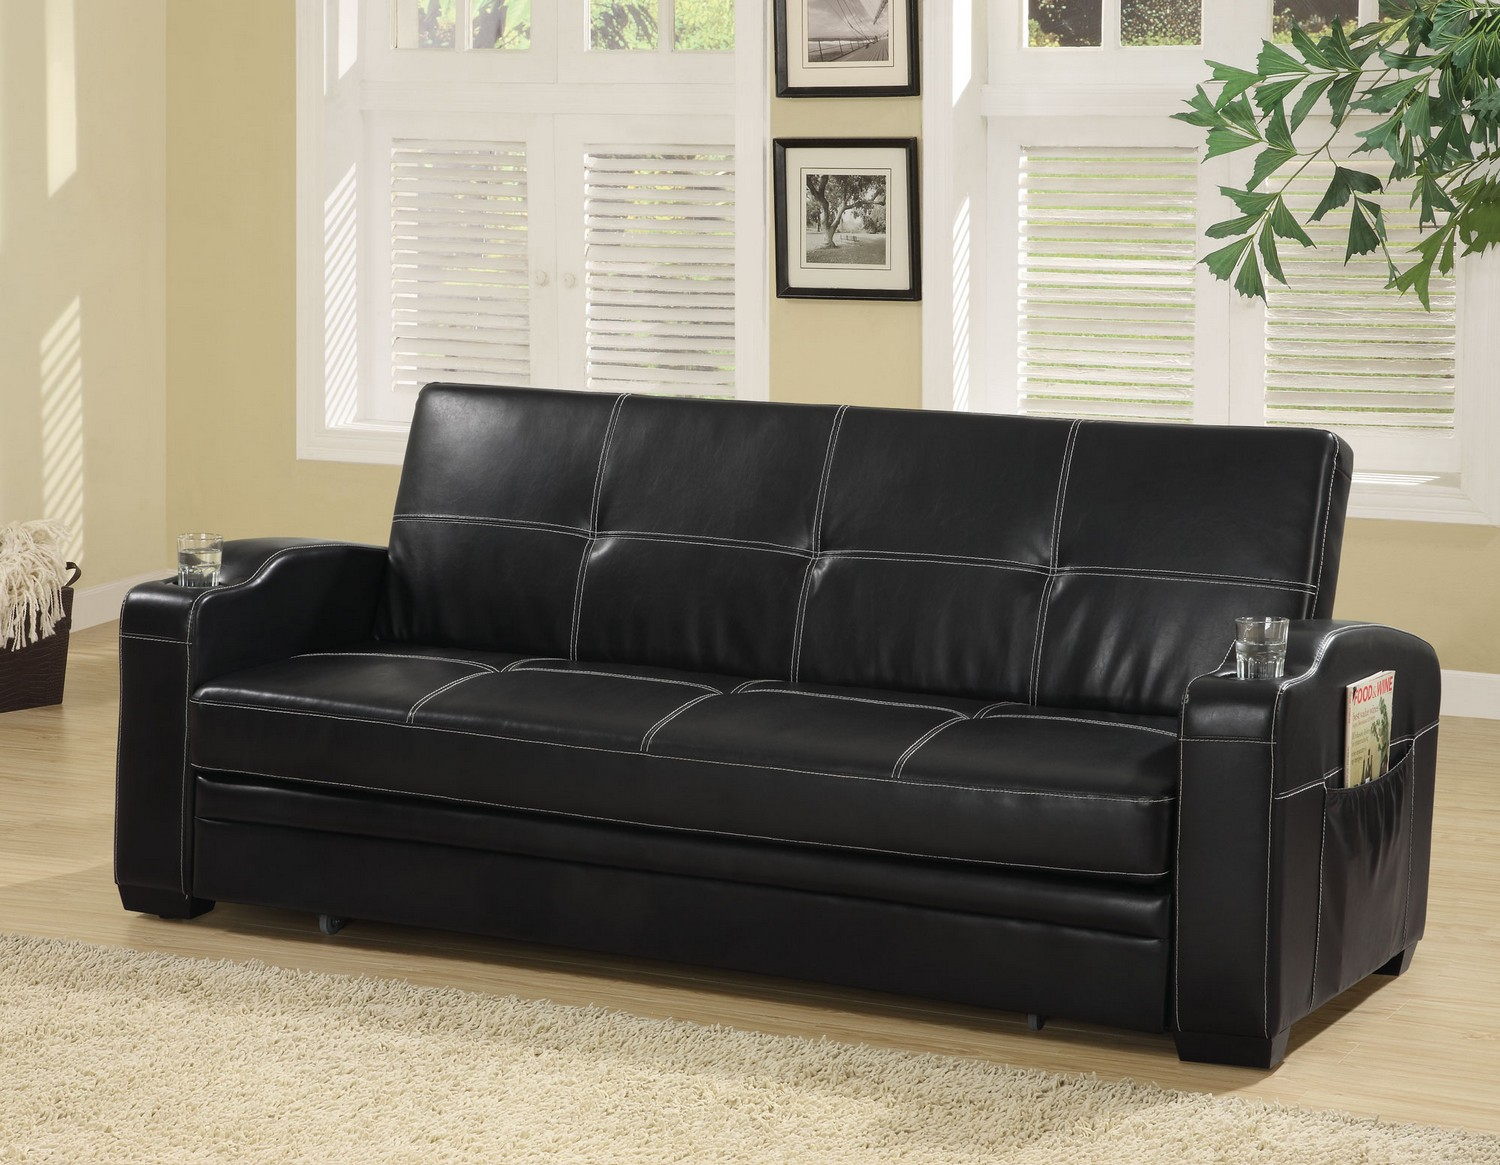 Coaster 300132 Sofa Bed - Black